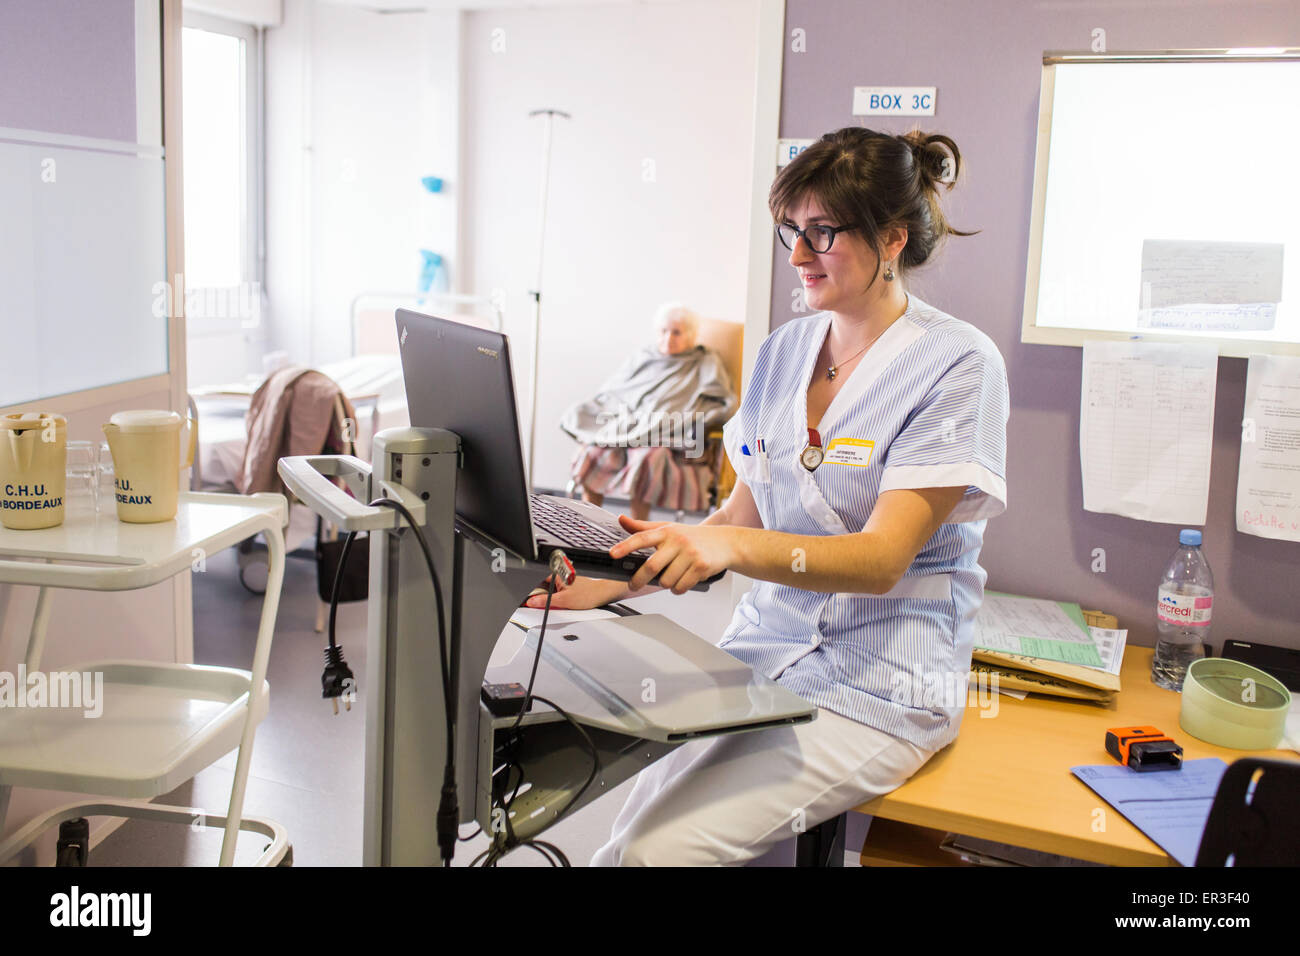 Nurse Rheumatology Department of Bordeaux hospital, France. - Stock Image